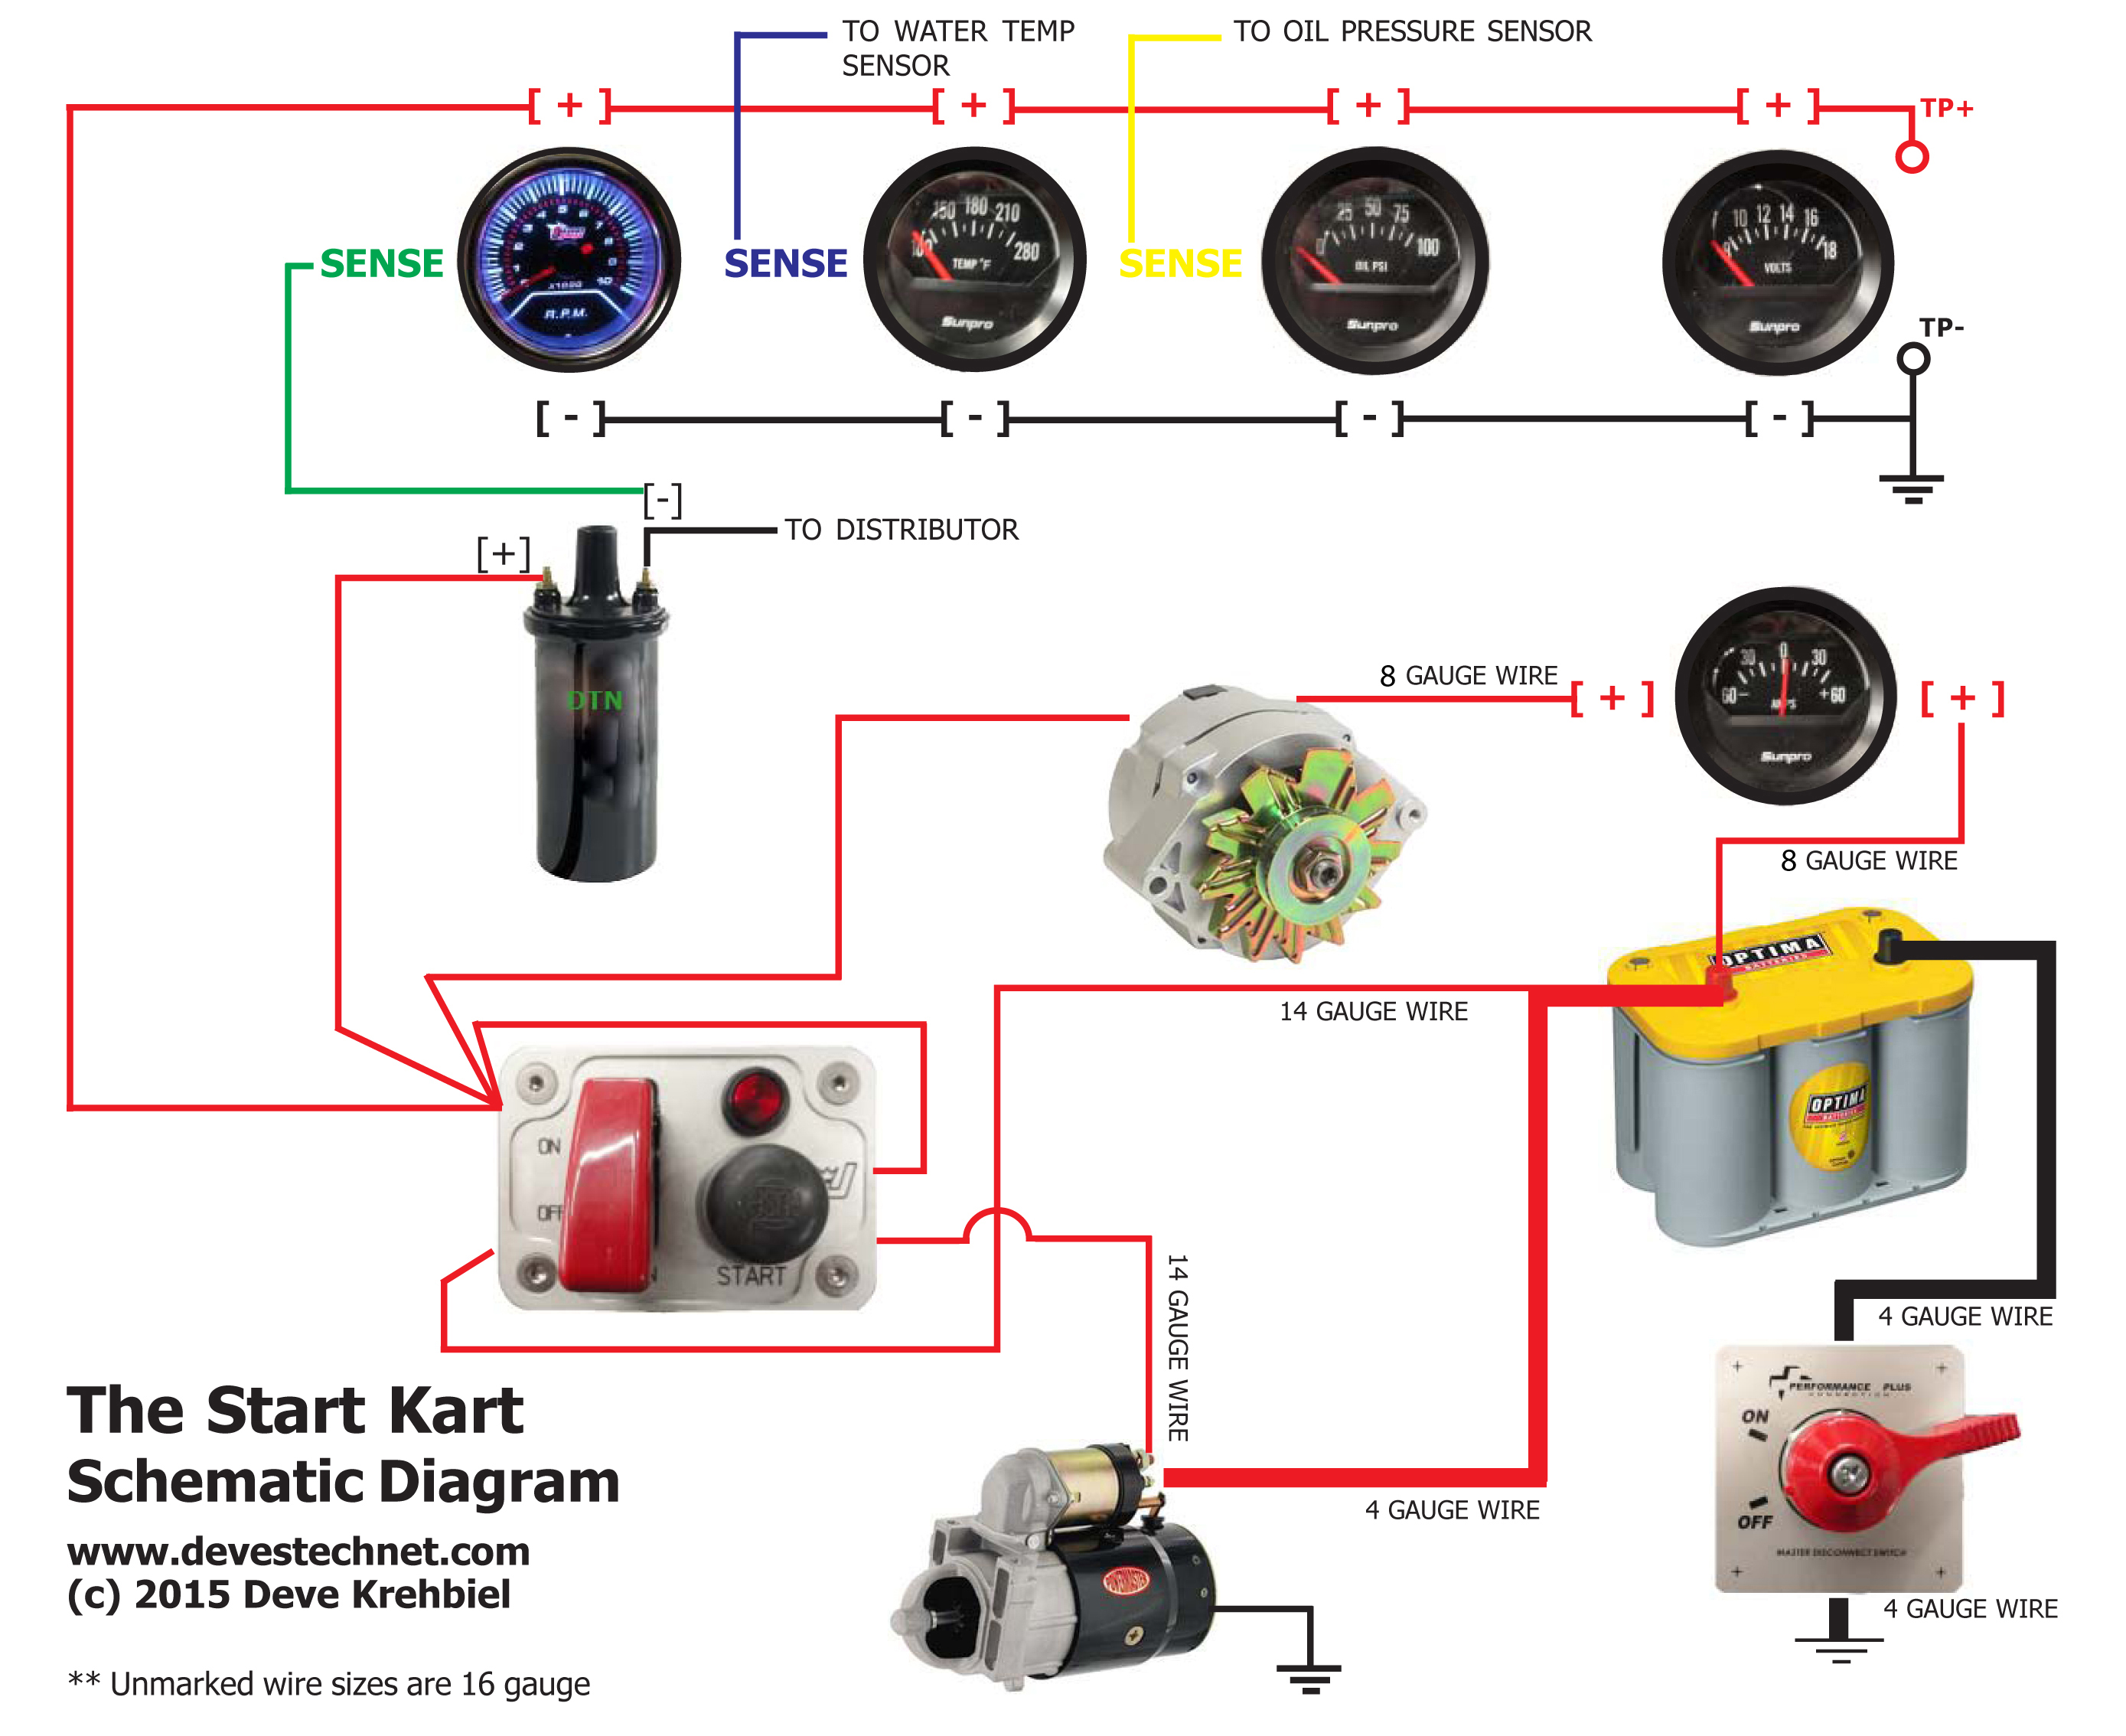 sunpro tachometer wiring diagram with Star Artplans on Small Engine Mag O Coil Wiring Diagram also Maxresdefault To Faria Fuel Gauge Wiring Diagram furthermore Watch further Auto Meter Tach Wiring Diagram furthermore Auto Meter Pro  p 2 Wiring Diagram.